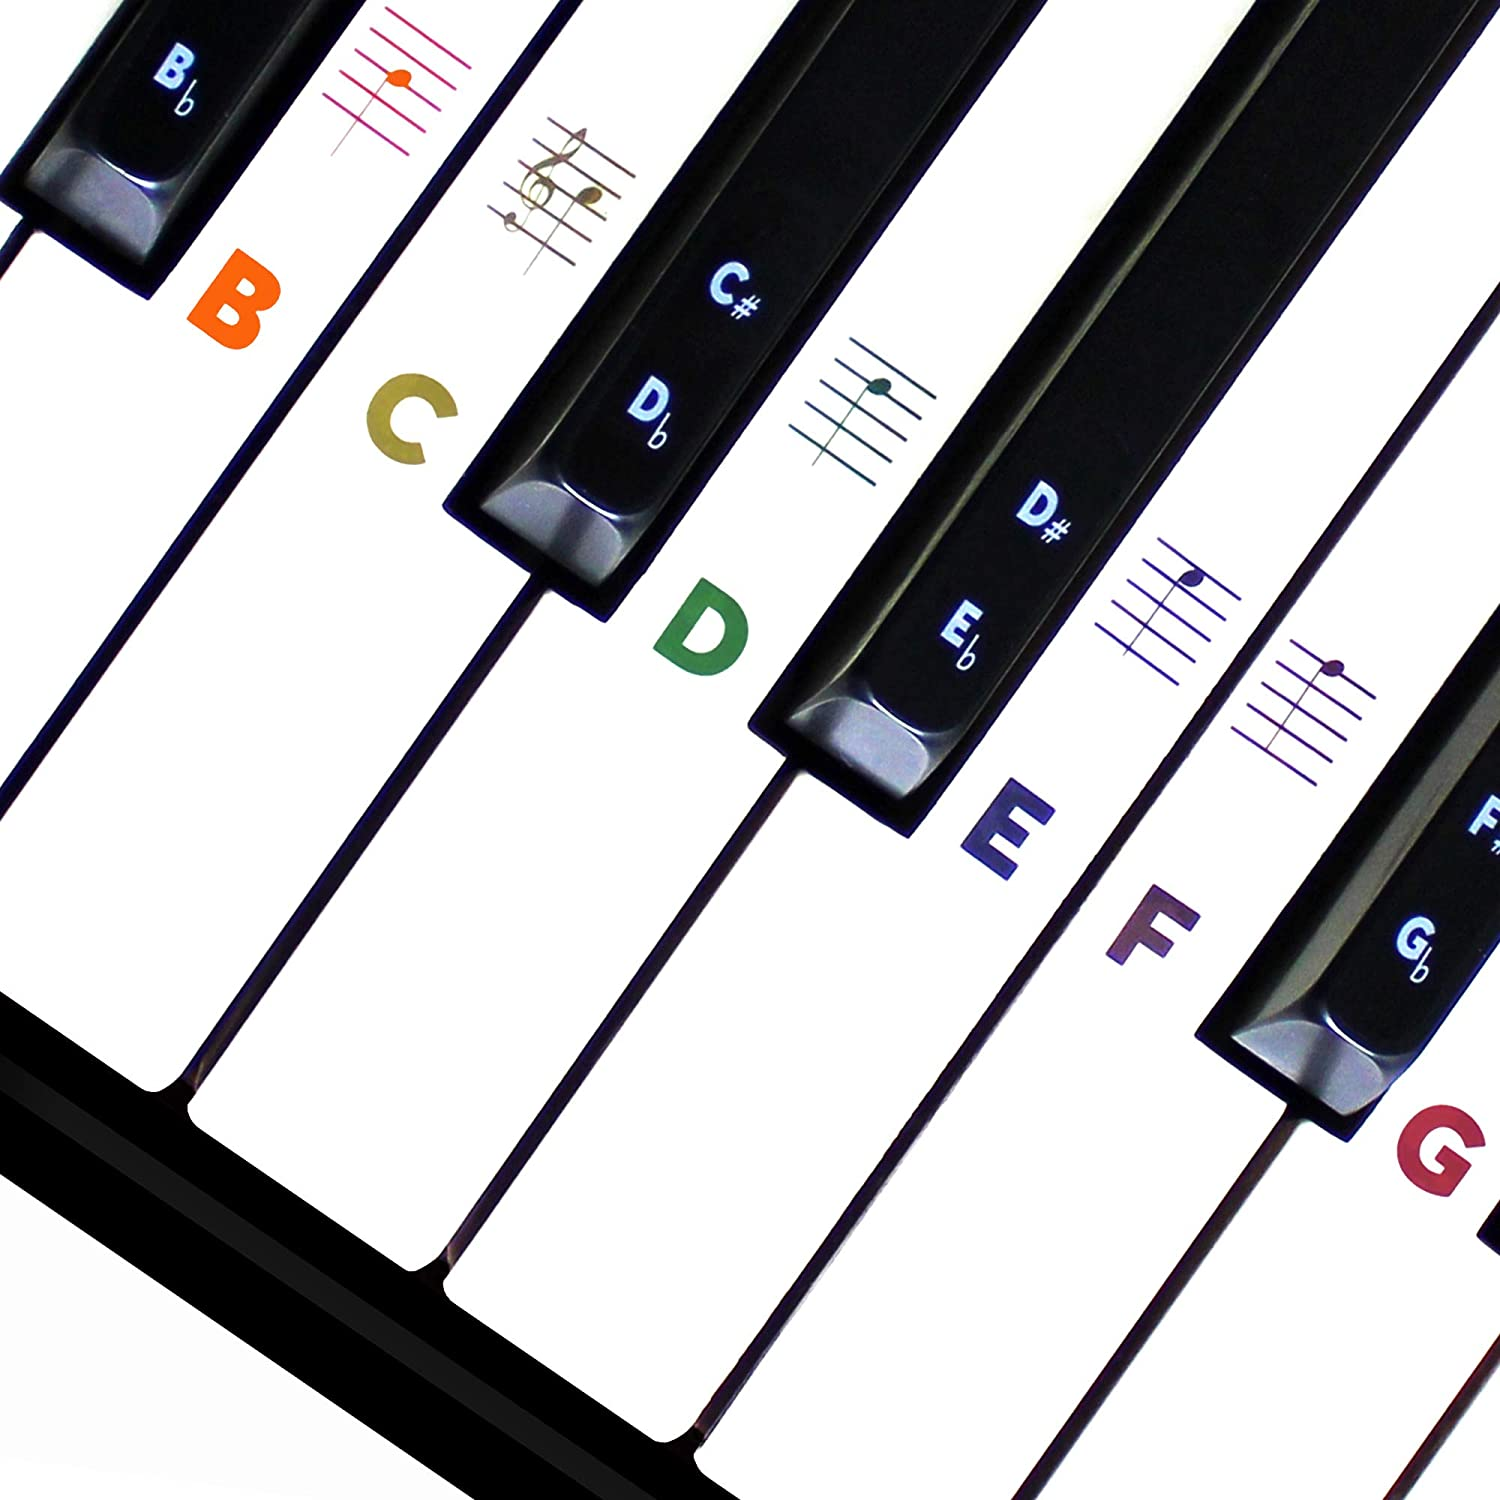 Piano Keyboard Stickers for Beginners 88/76/61/54/49/37 Keys - Removable, Transparent, Double Coating Piano Stickers - Perfect for Kids, Big Letters, Easy to Install with Cleaning Cloth